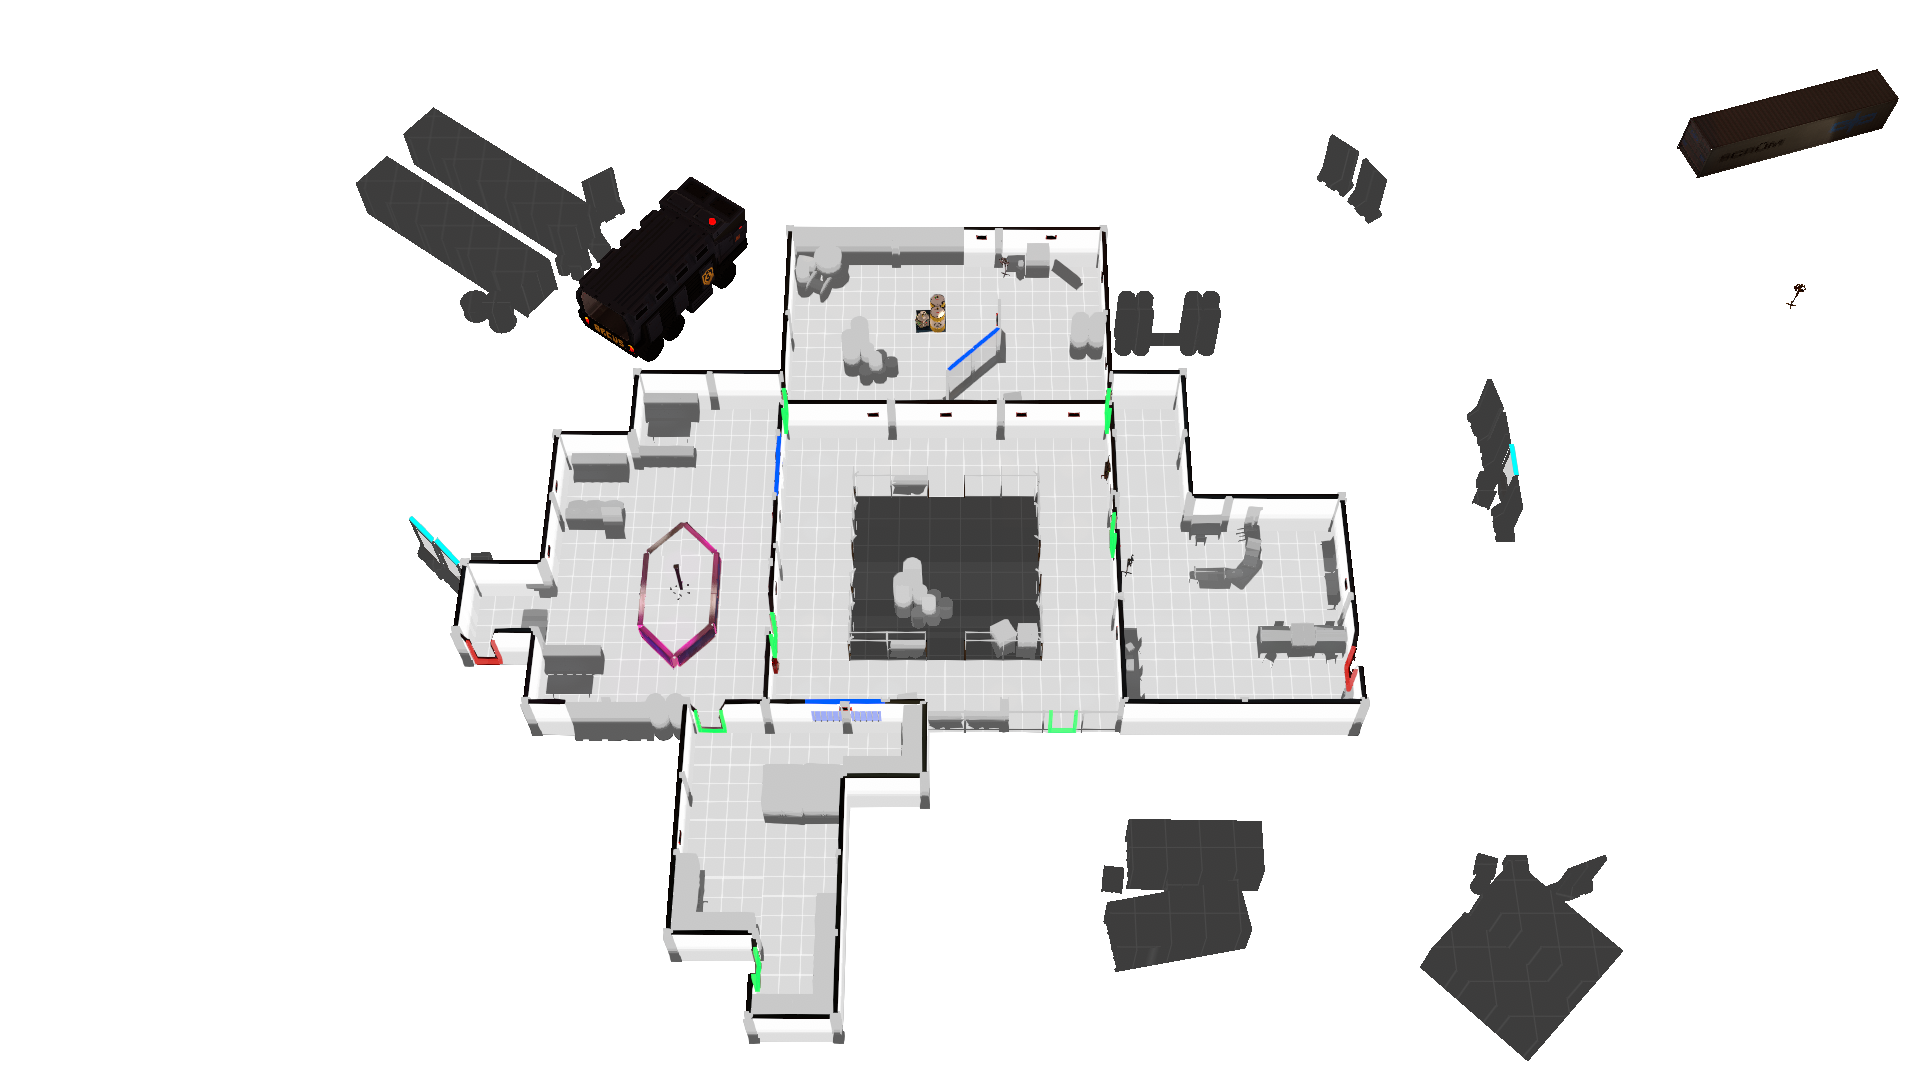 [Killhouse] Juno Dagger [905522290] - MAP.png